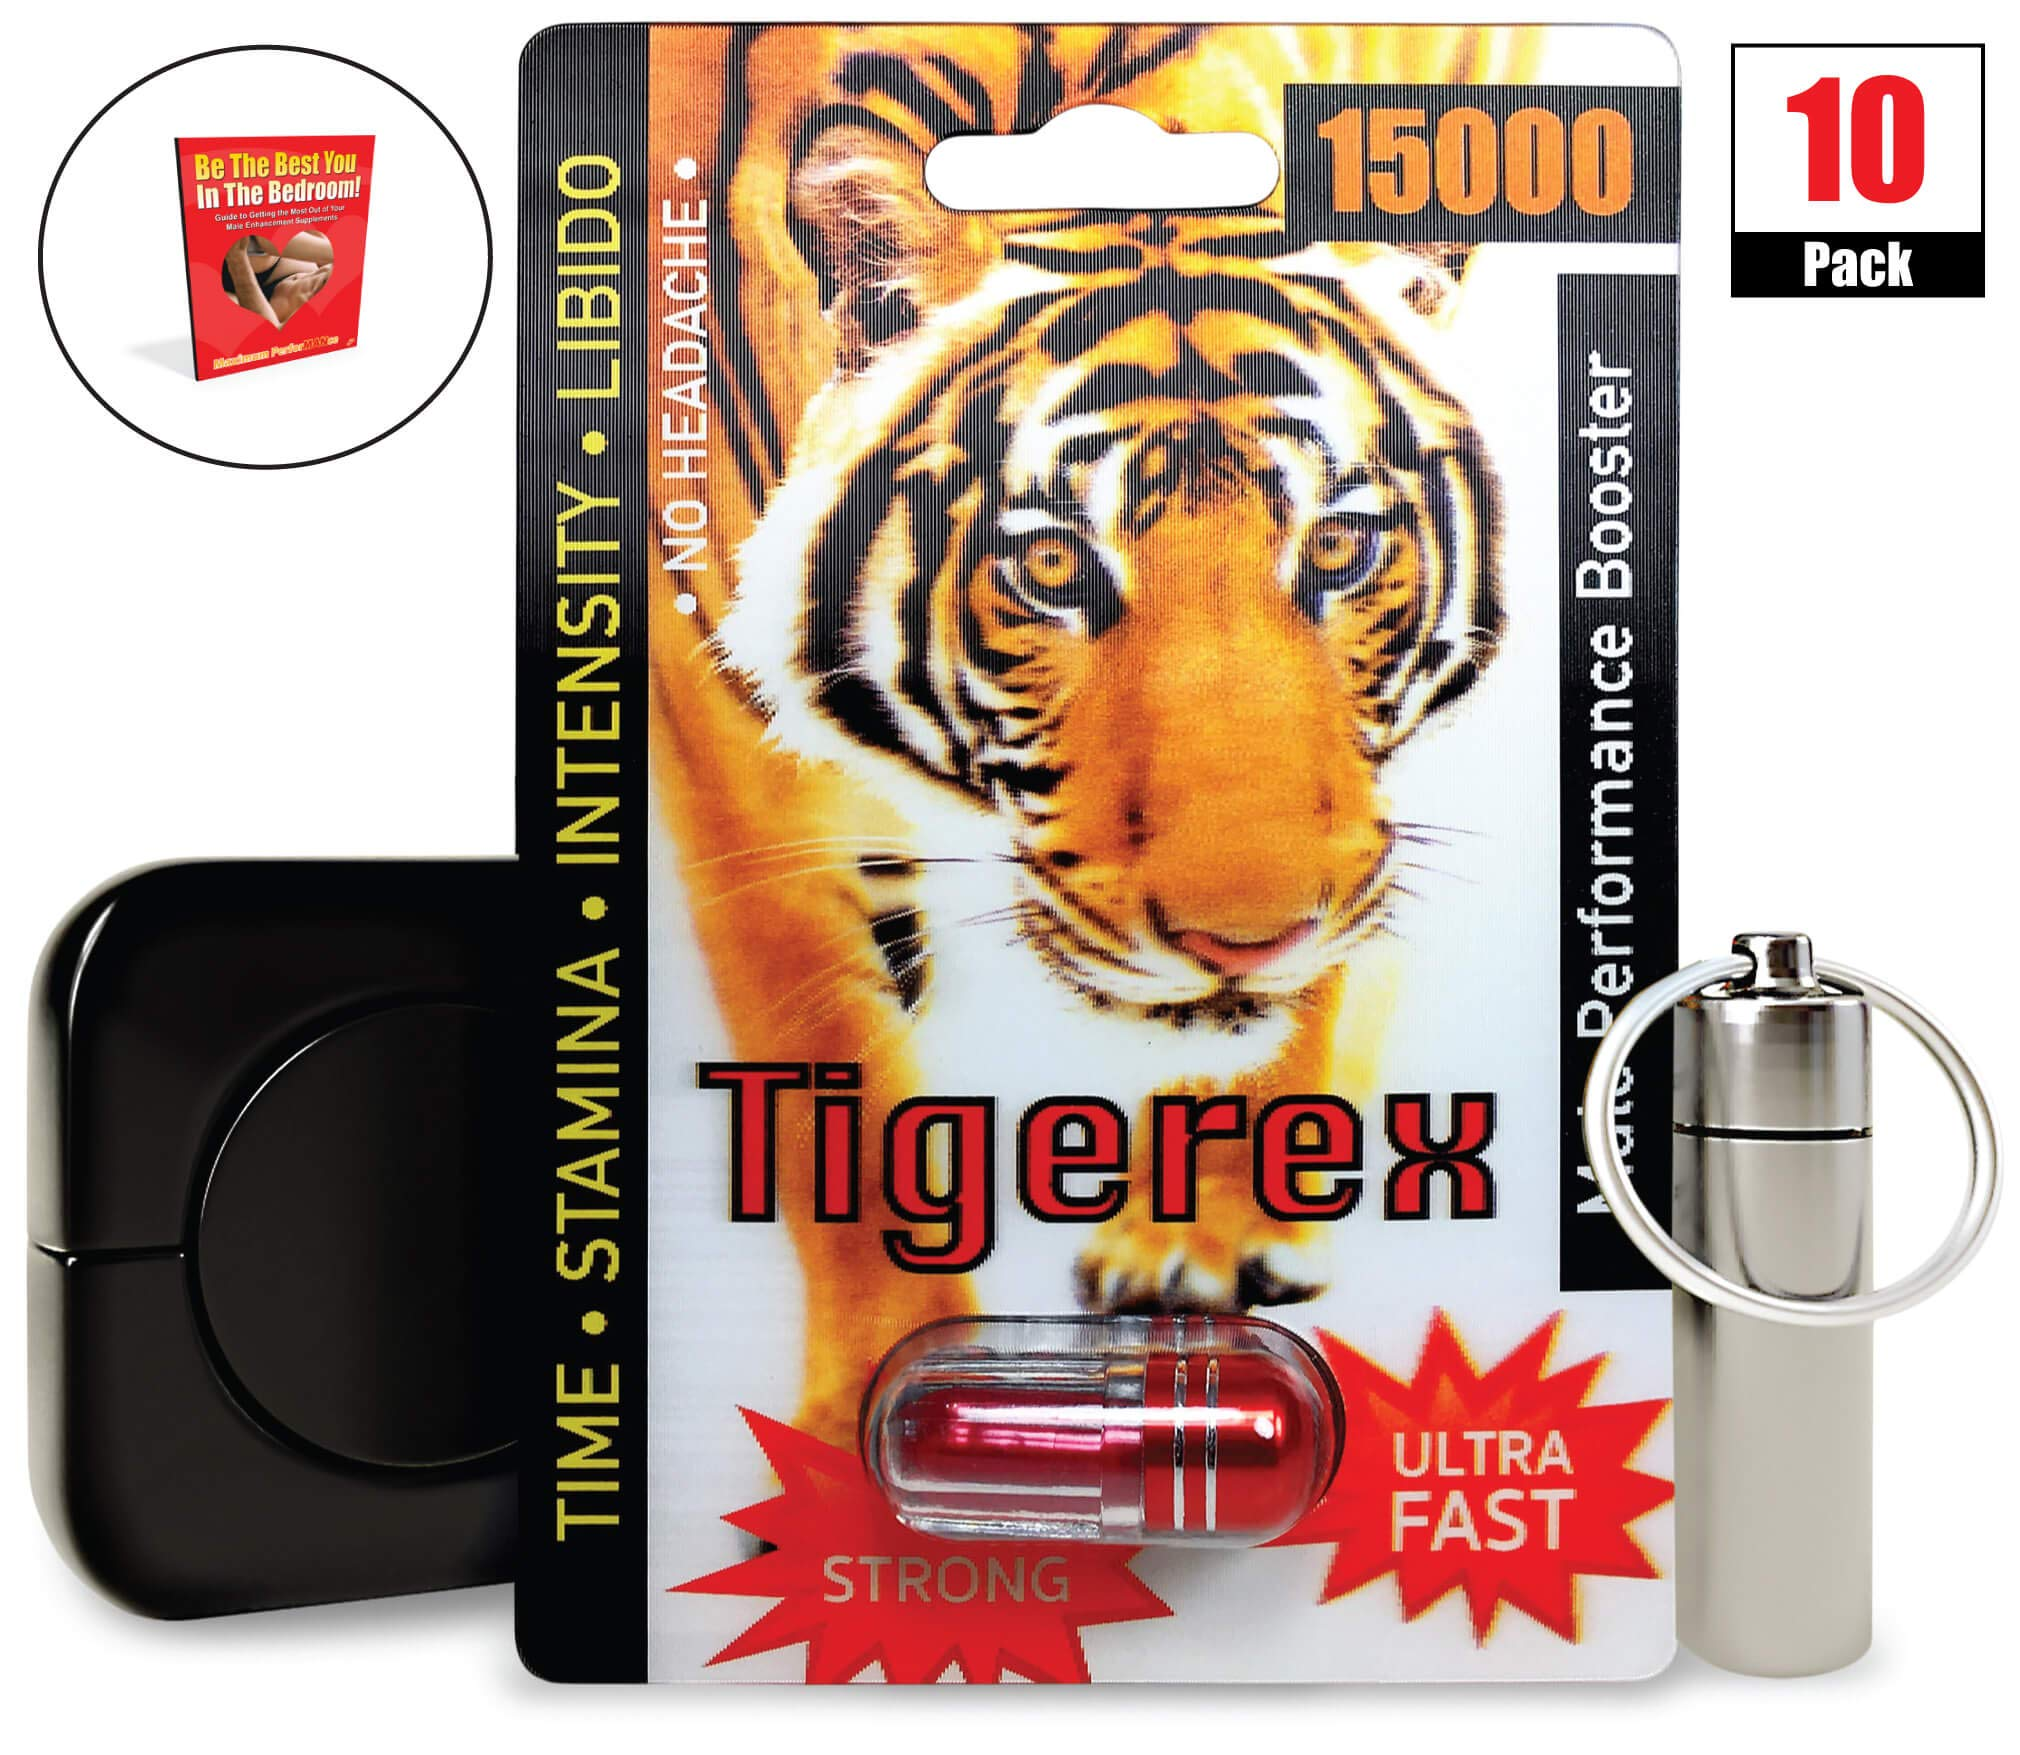 Tigerex 15000 (10 Caps) Male Performance, Energy, Enhancement, and Endurance Bundle with Accessories (13 Items)